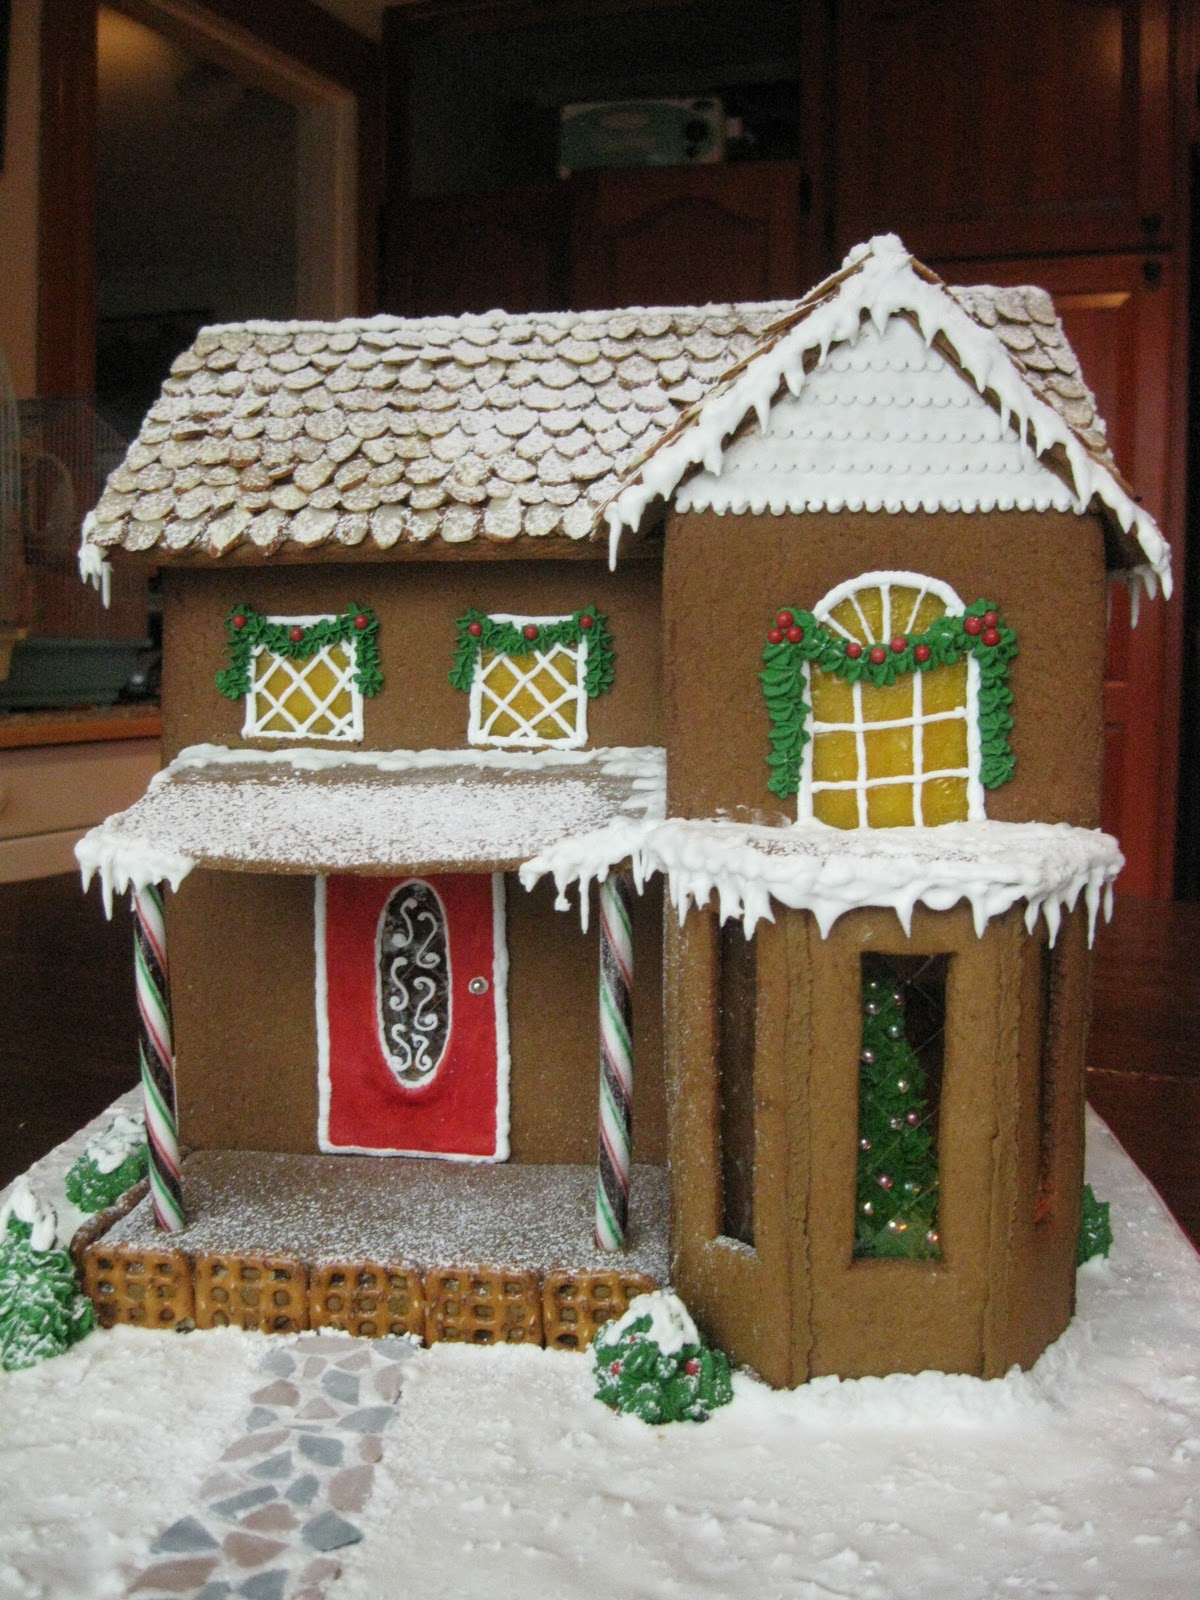 Baking Outside the Box: Gingerbread Houses - Tips and Ideas on candy box, fireplace box, halloween box, biscotti box, tiramisu box, pig roast box, butterfly box, text box, cookie dough box, gumbo box, ornament box, church box, brownies box, panettone box, giveaway box, icing box, ginger box, cupcake house box, fudge box, rose box,